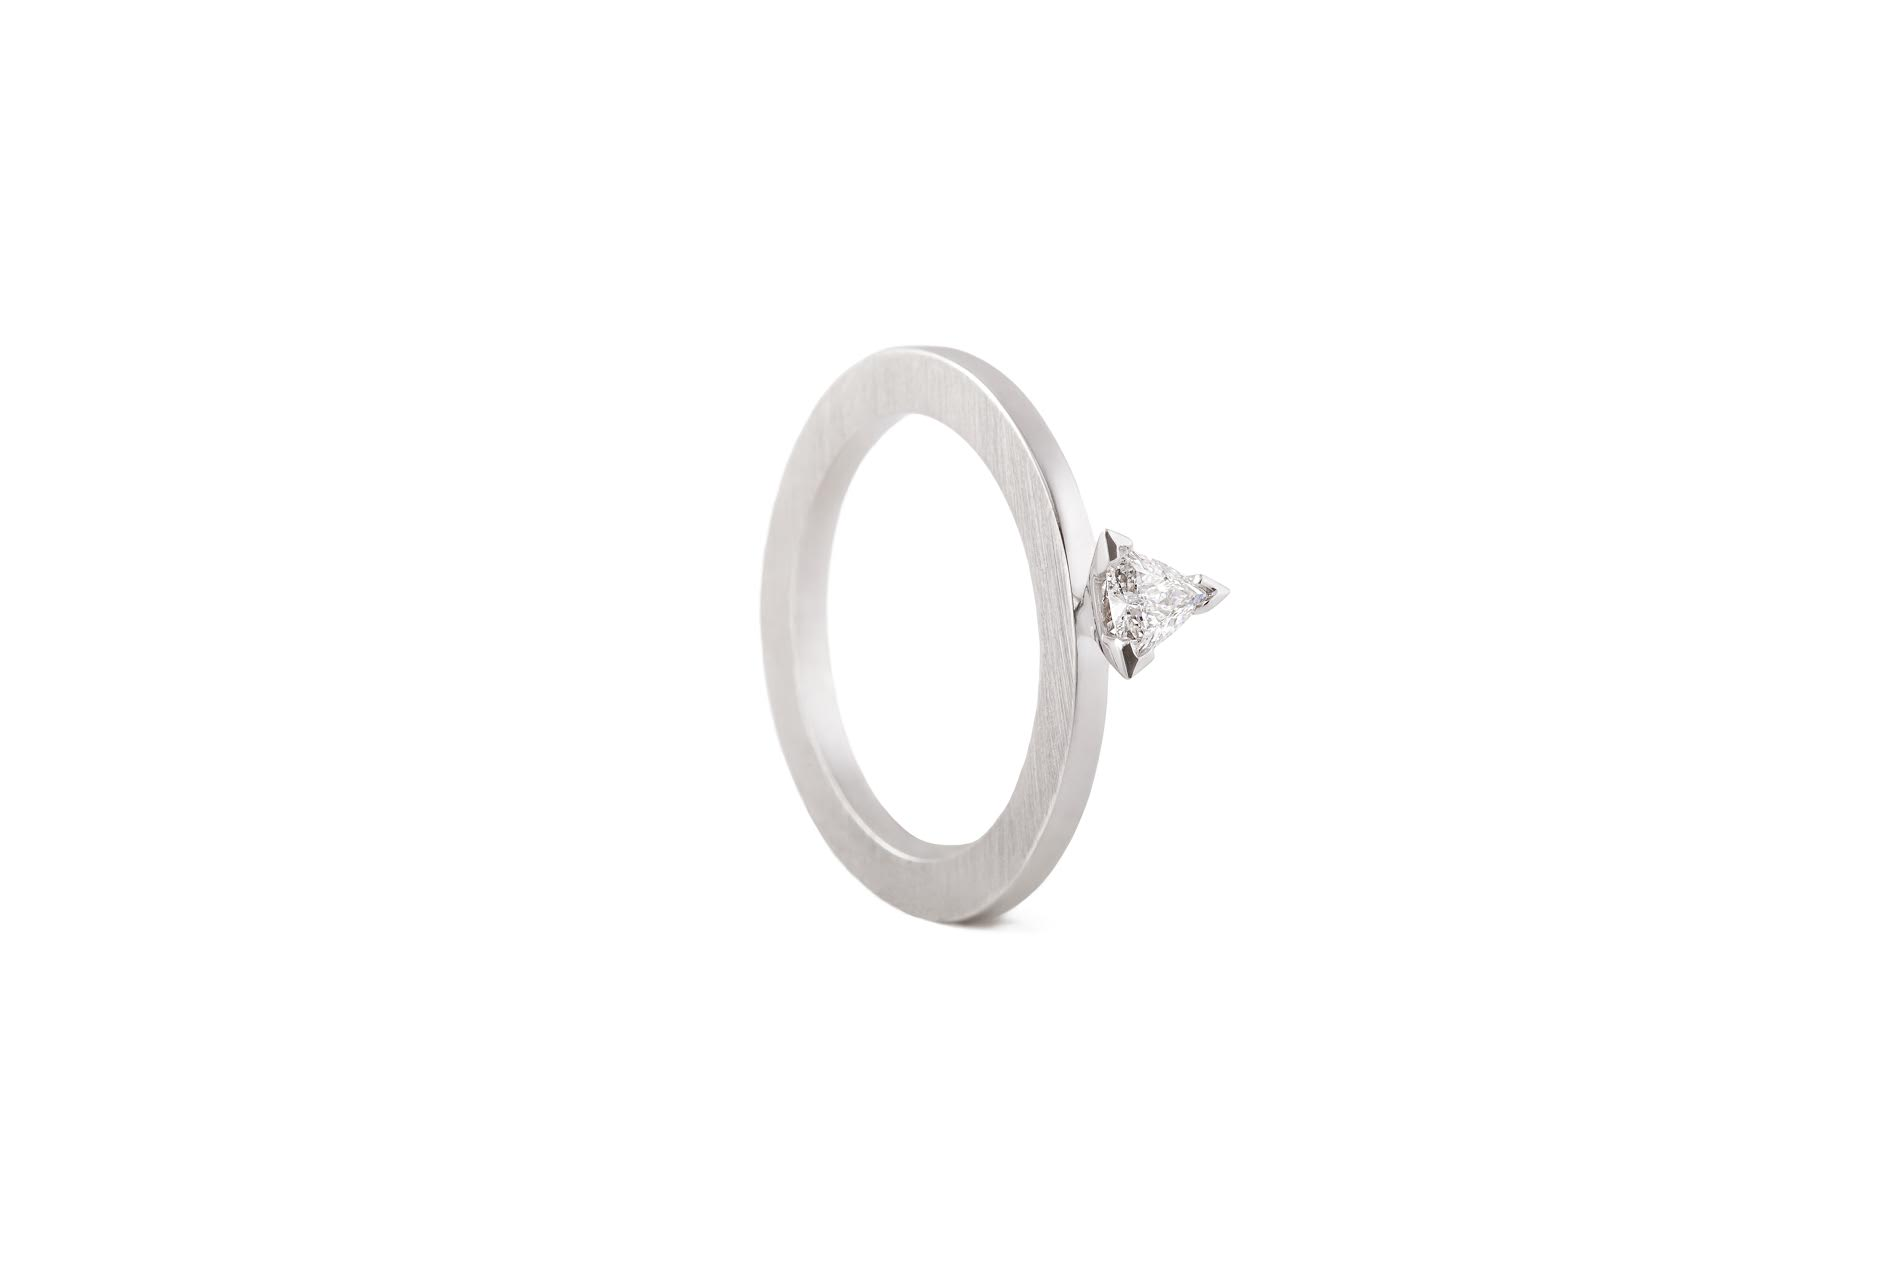 CREST A RING 18K WHITE GOLD TRIANGLE DIAMOND 0.15CT